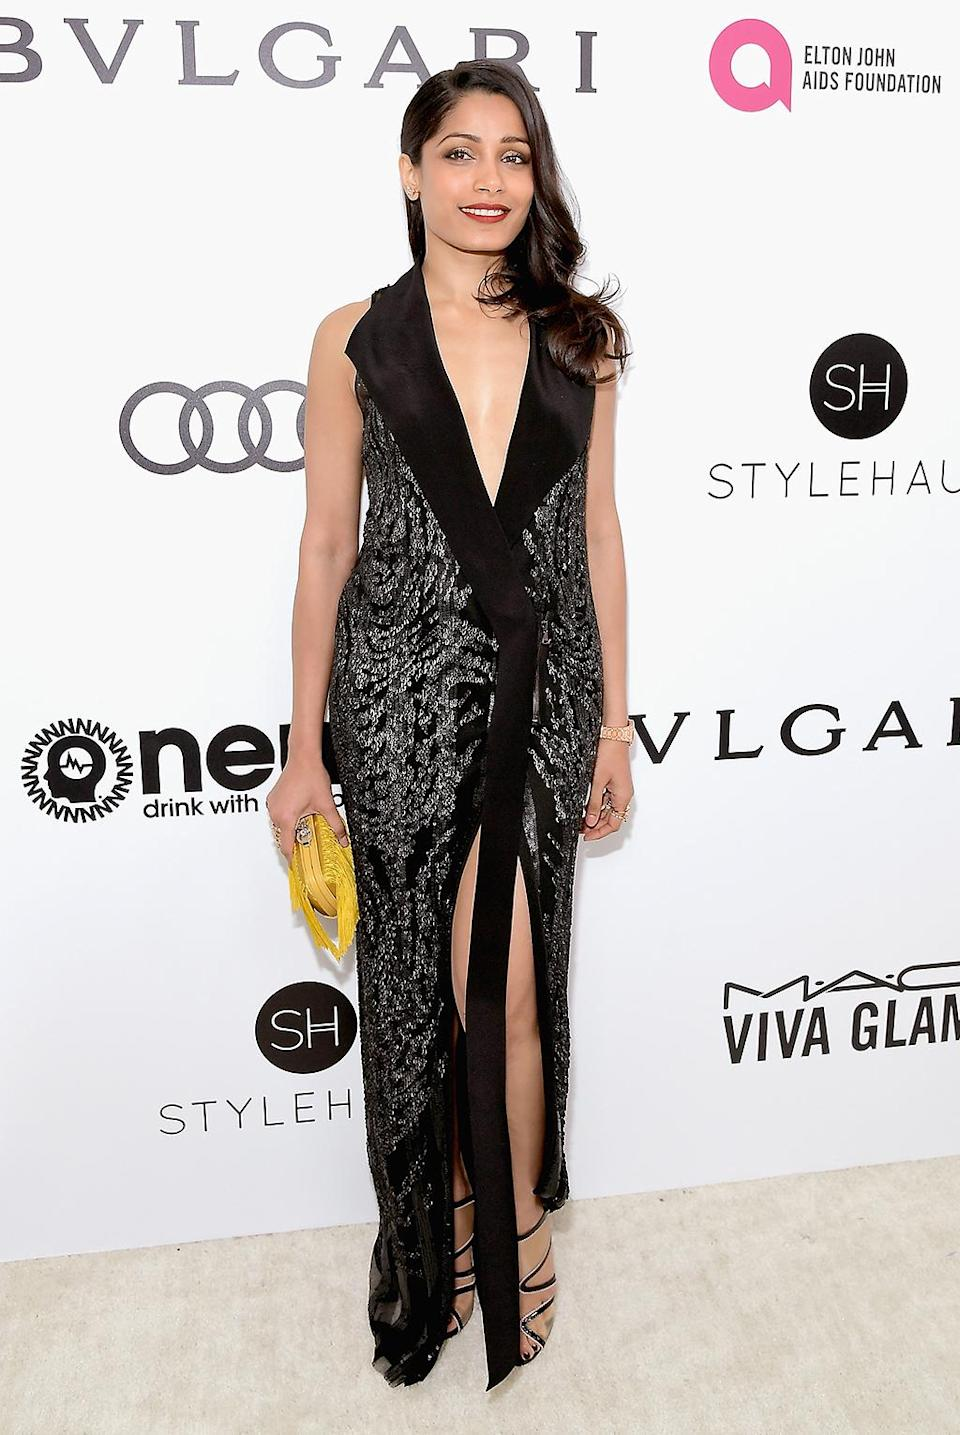 <p>Freida Pinto attends the 25th Annual Elton John AIDS Foundation's Academy Awards Viewing Party with cocktails by Clase Azul Tequila and Chopin Vodka at The City of West Hollywood Park on February 26, 2017 in West Hollywood, California. (Photo by Charley Gallay/Getty Images for Clase Azul Tequila and Chopin Vodka) </p>